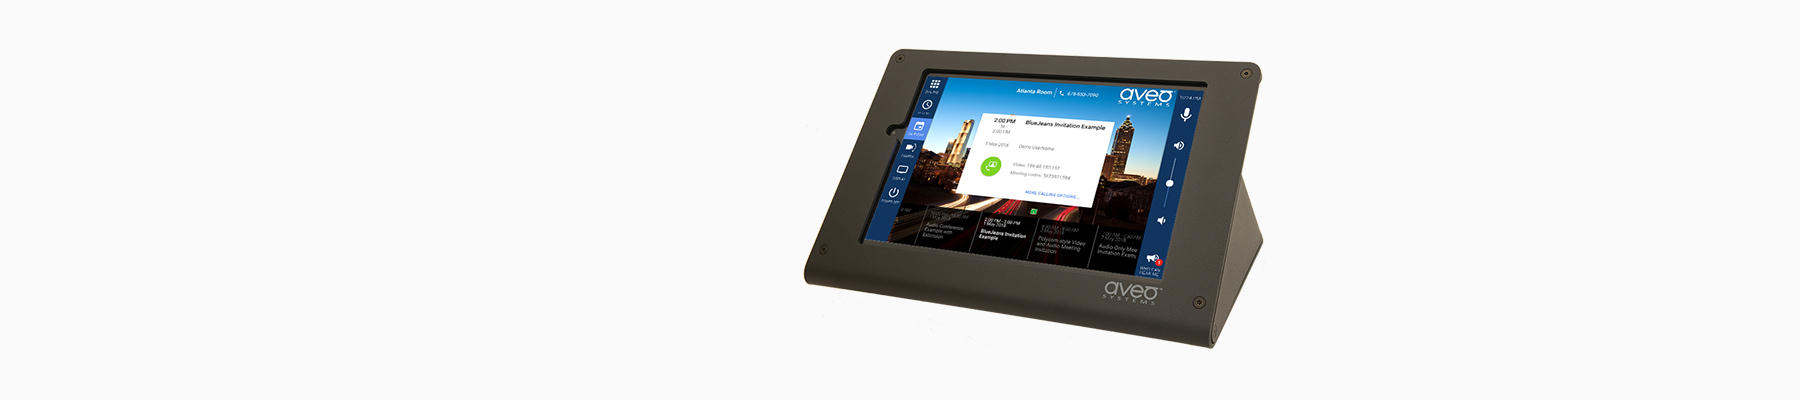 <div class='brand-intro-section'>